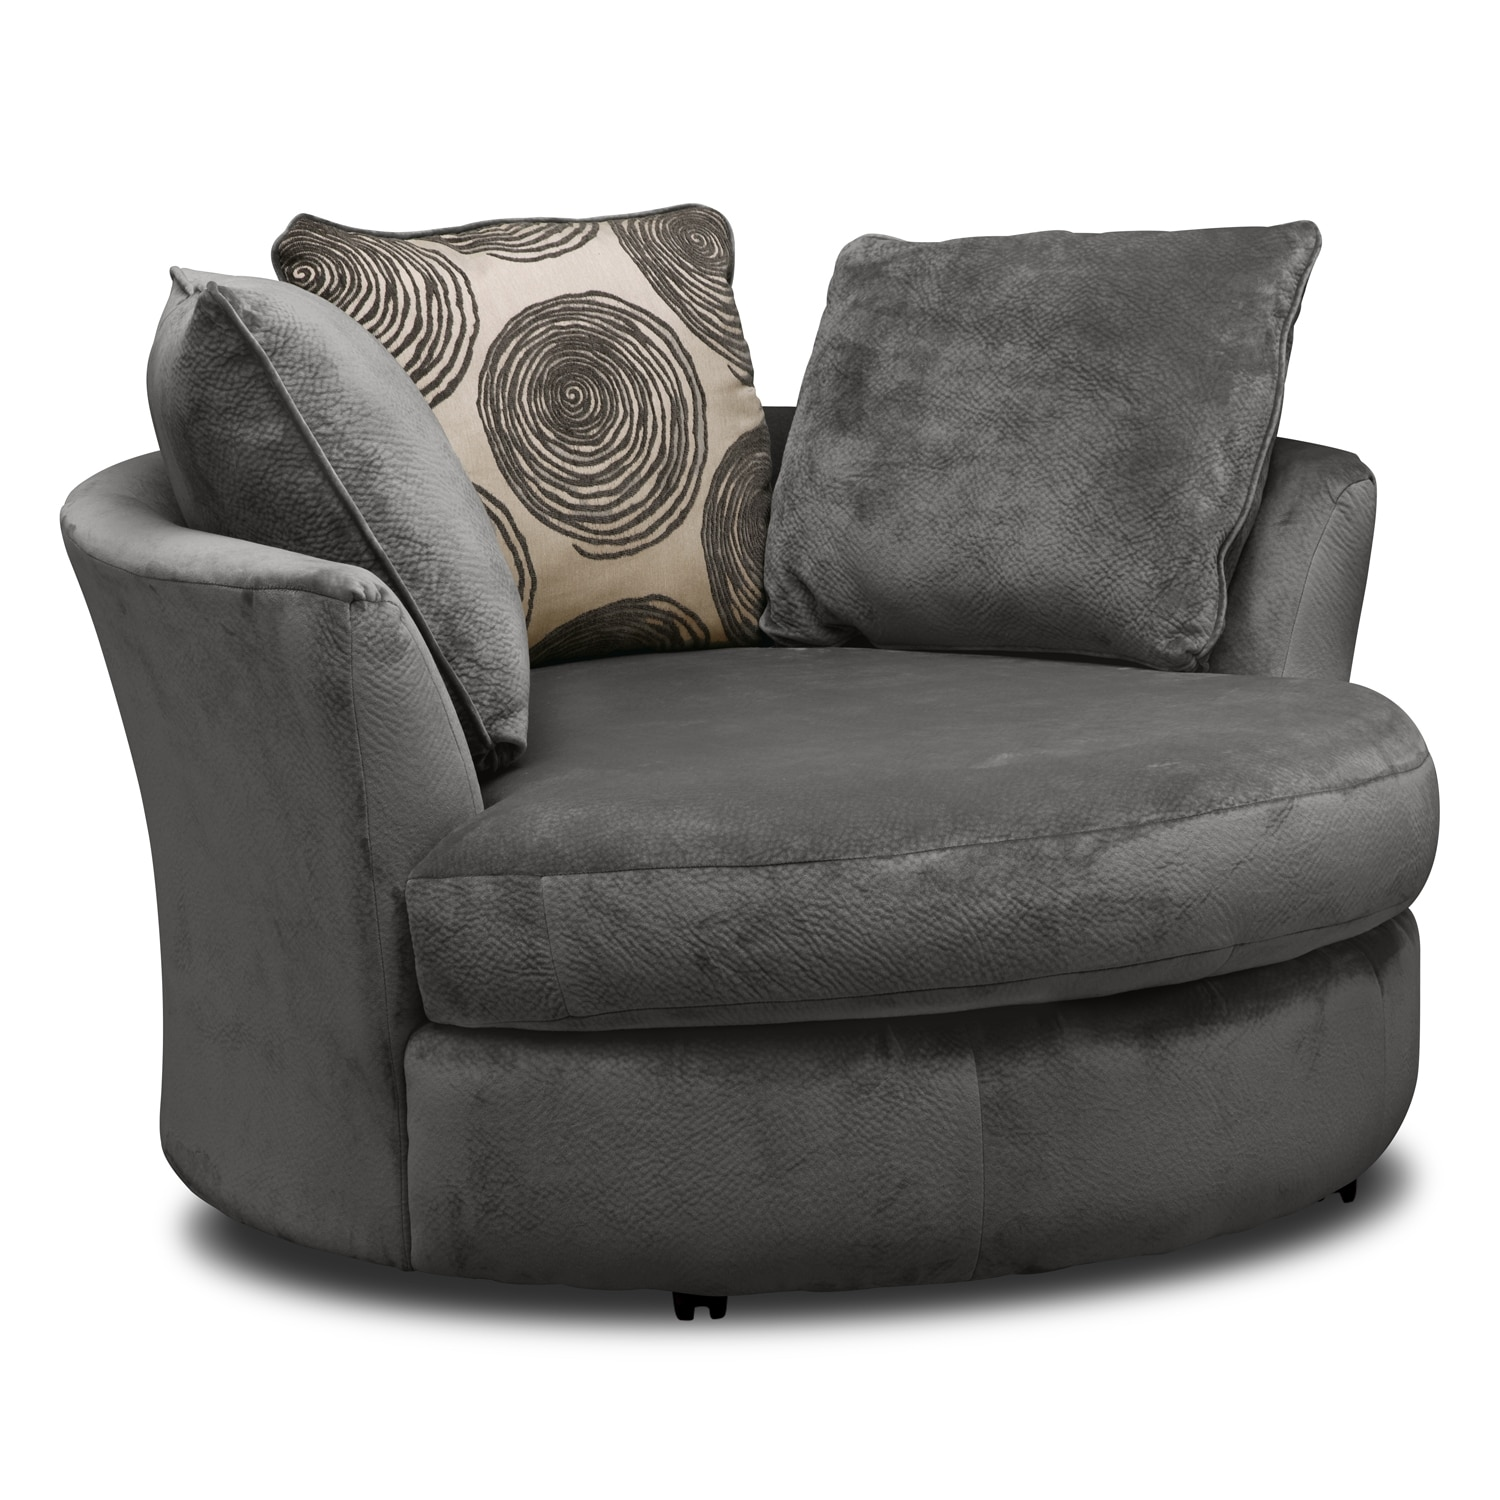 Cordelle Swivel Chair Gray Value City Furniture : 309178 from www.valuecityfurniture.com size 1500 x 1500 jpeg 291kB